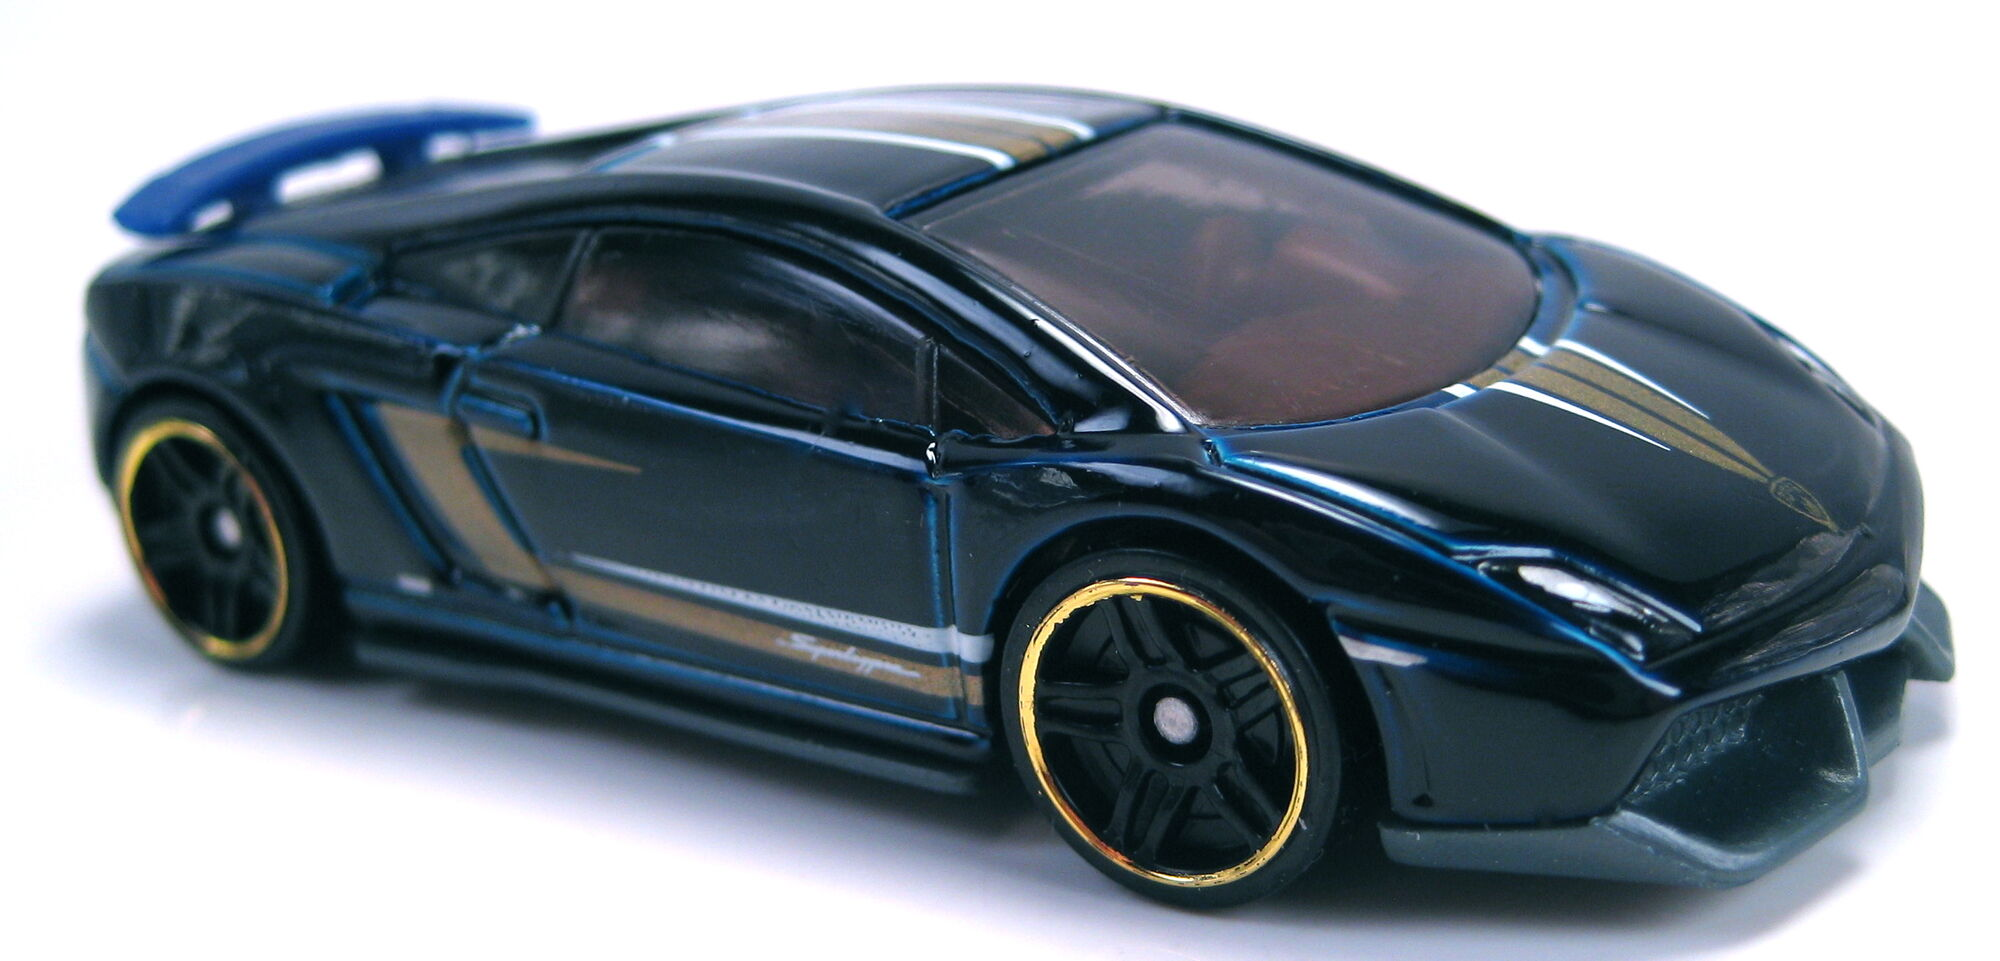 image lamborghini gallardo lp 570 4 superleggera 2012 all stars jpg hot wheels wiki fandom. Black Bedroom Furniture Sets. Home Design Ideas